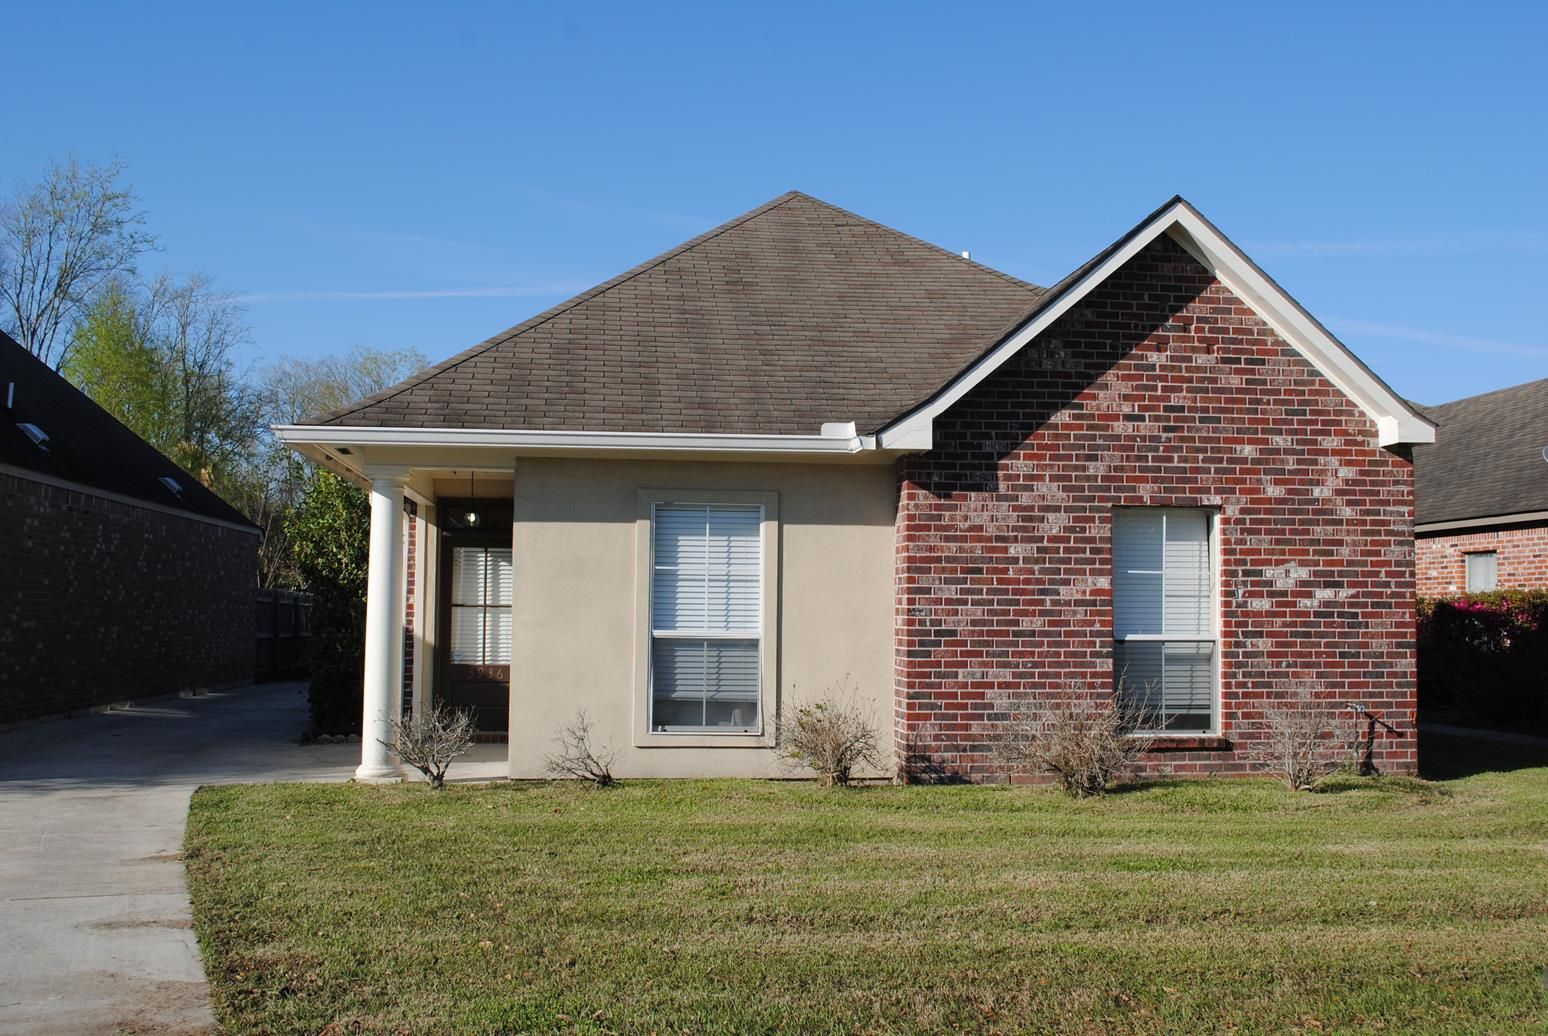 Great lake beau pre home near lsu and minutes to downtown baton great lake beau pre home near lsu and minutes to downtown baton rouge this 3 bedroom 2 bath home features ceramic tile floors in main living and wet areas dailygadgetfo Choice Image